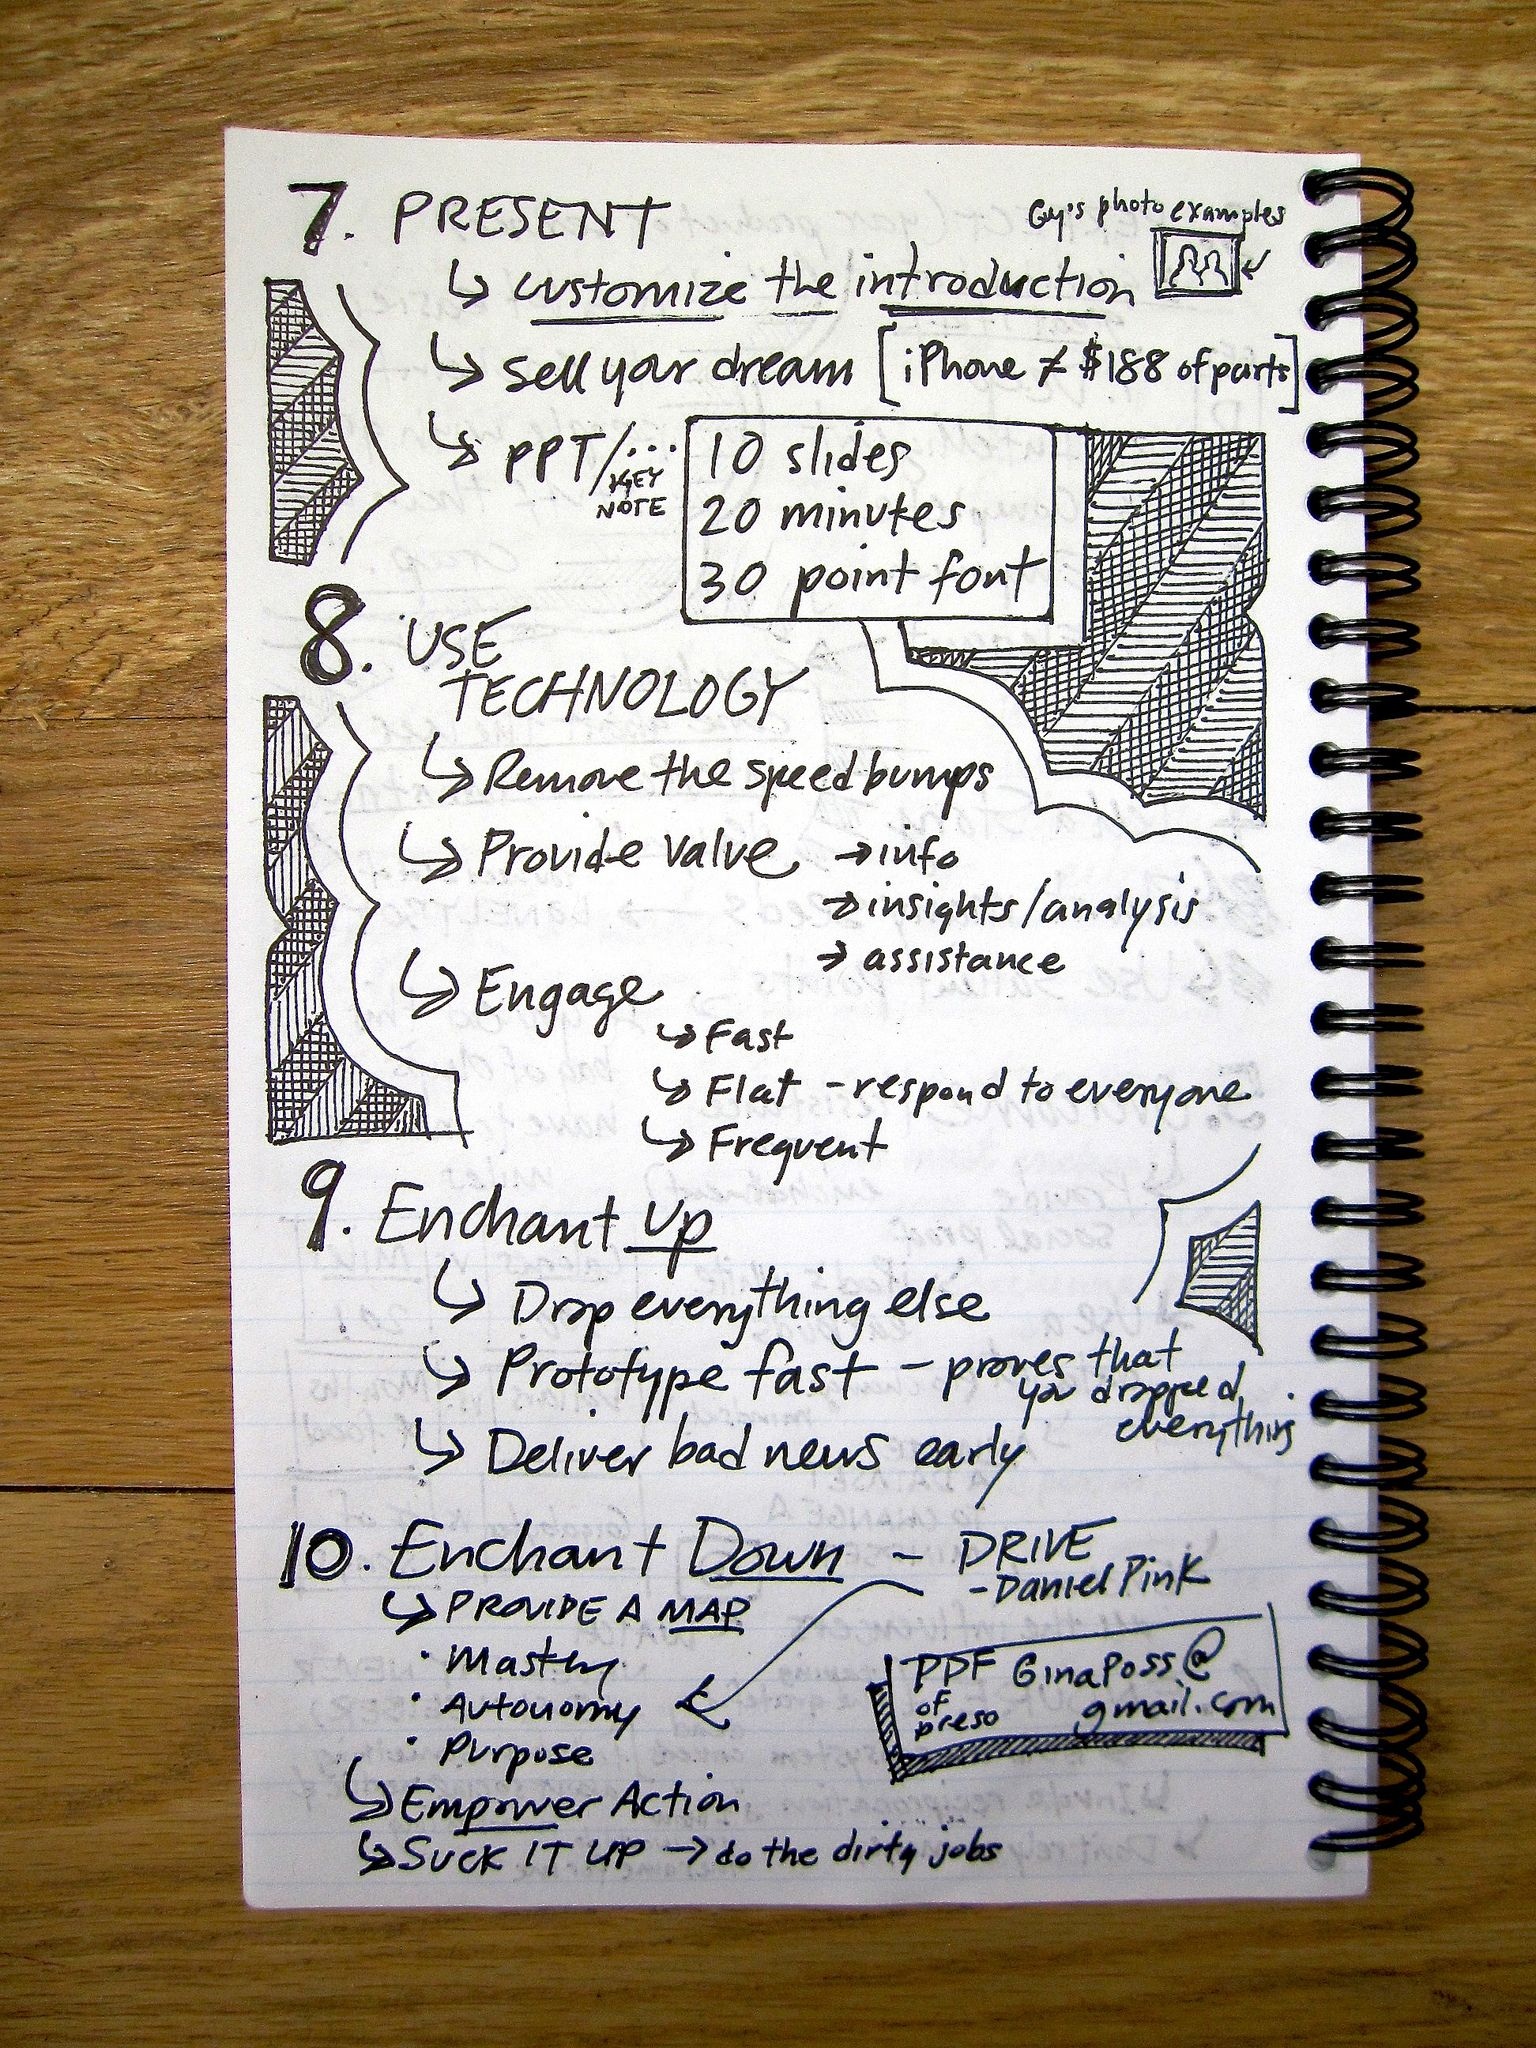 Inc. 500|5000 2012 Sketchnotes Page 12 of 15 | by Think Brownstone